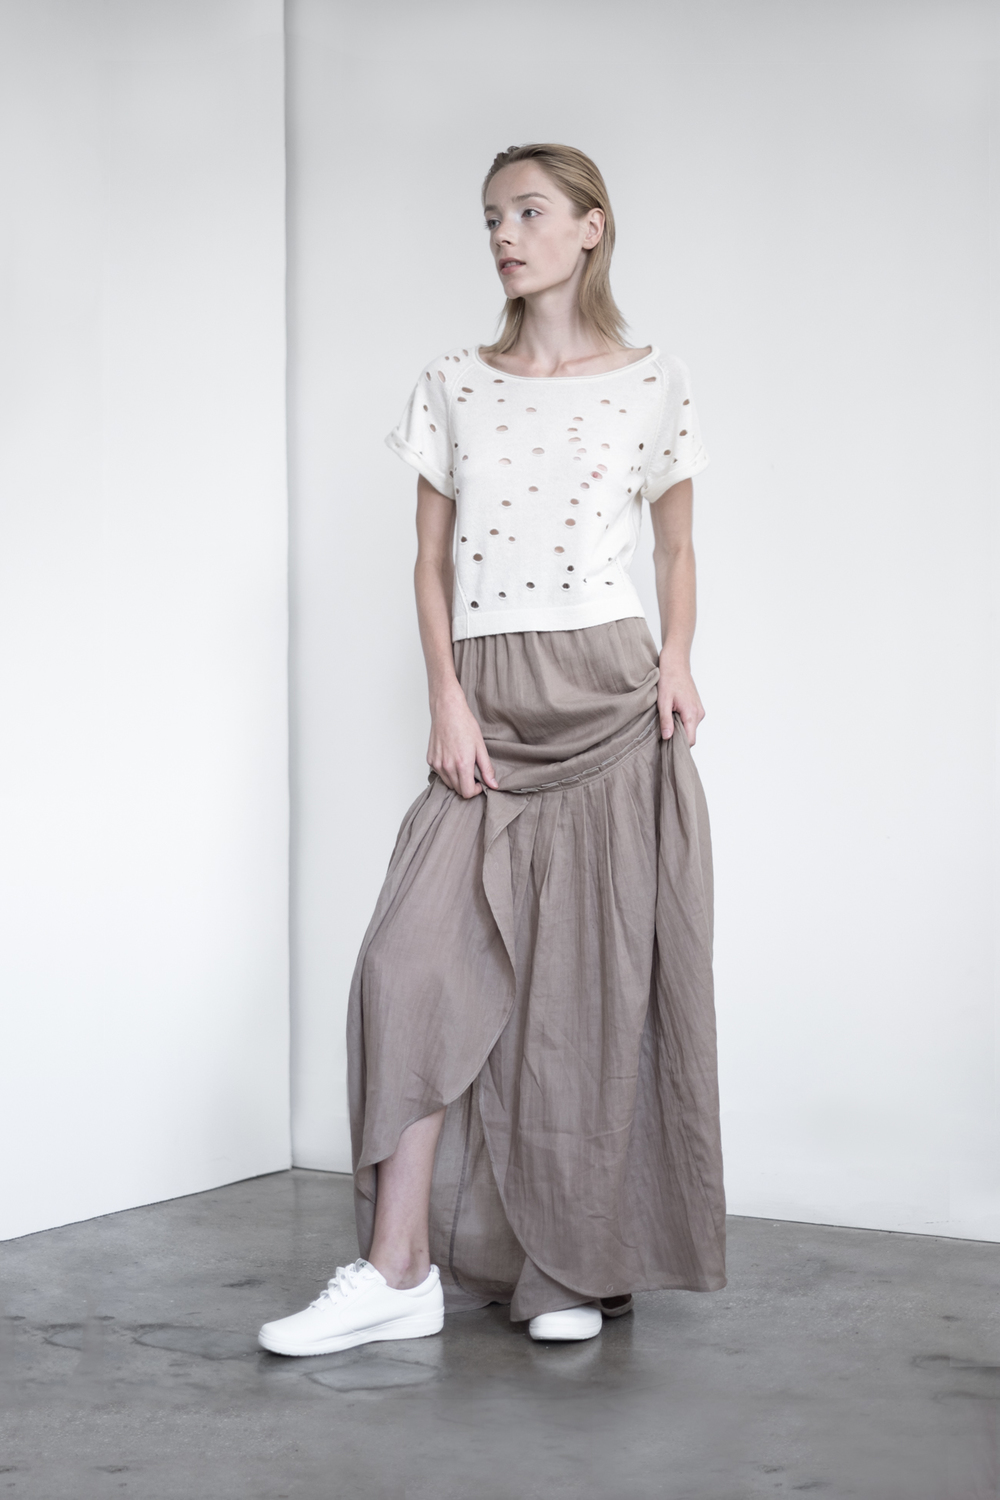 LOOK 31   TOP:  2296 / Bone  - Rolled short sleeve with engineered cut outs in fine gauge cashmere.   BOTTOM:  2291 / Timber - Long maxi skirt also can be worn as strapless dress, in crinkle woven 2-layer cotton gauze.